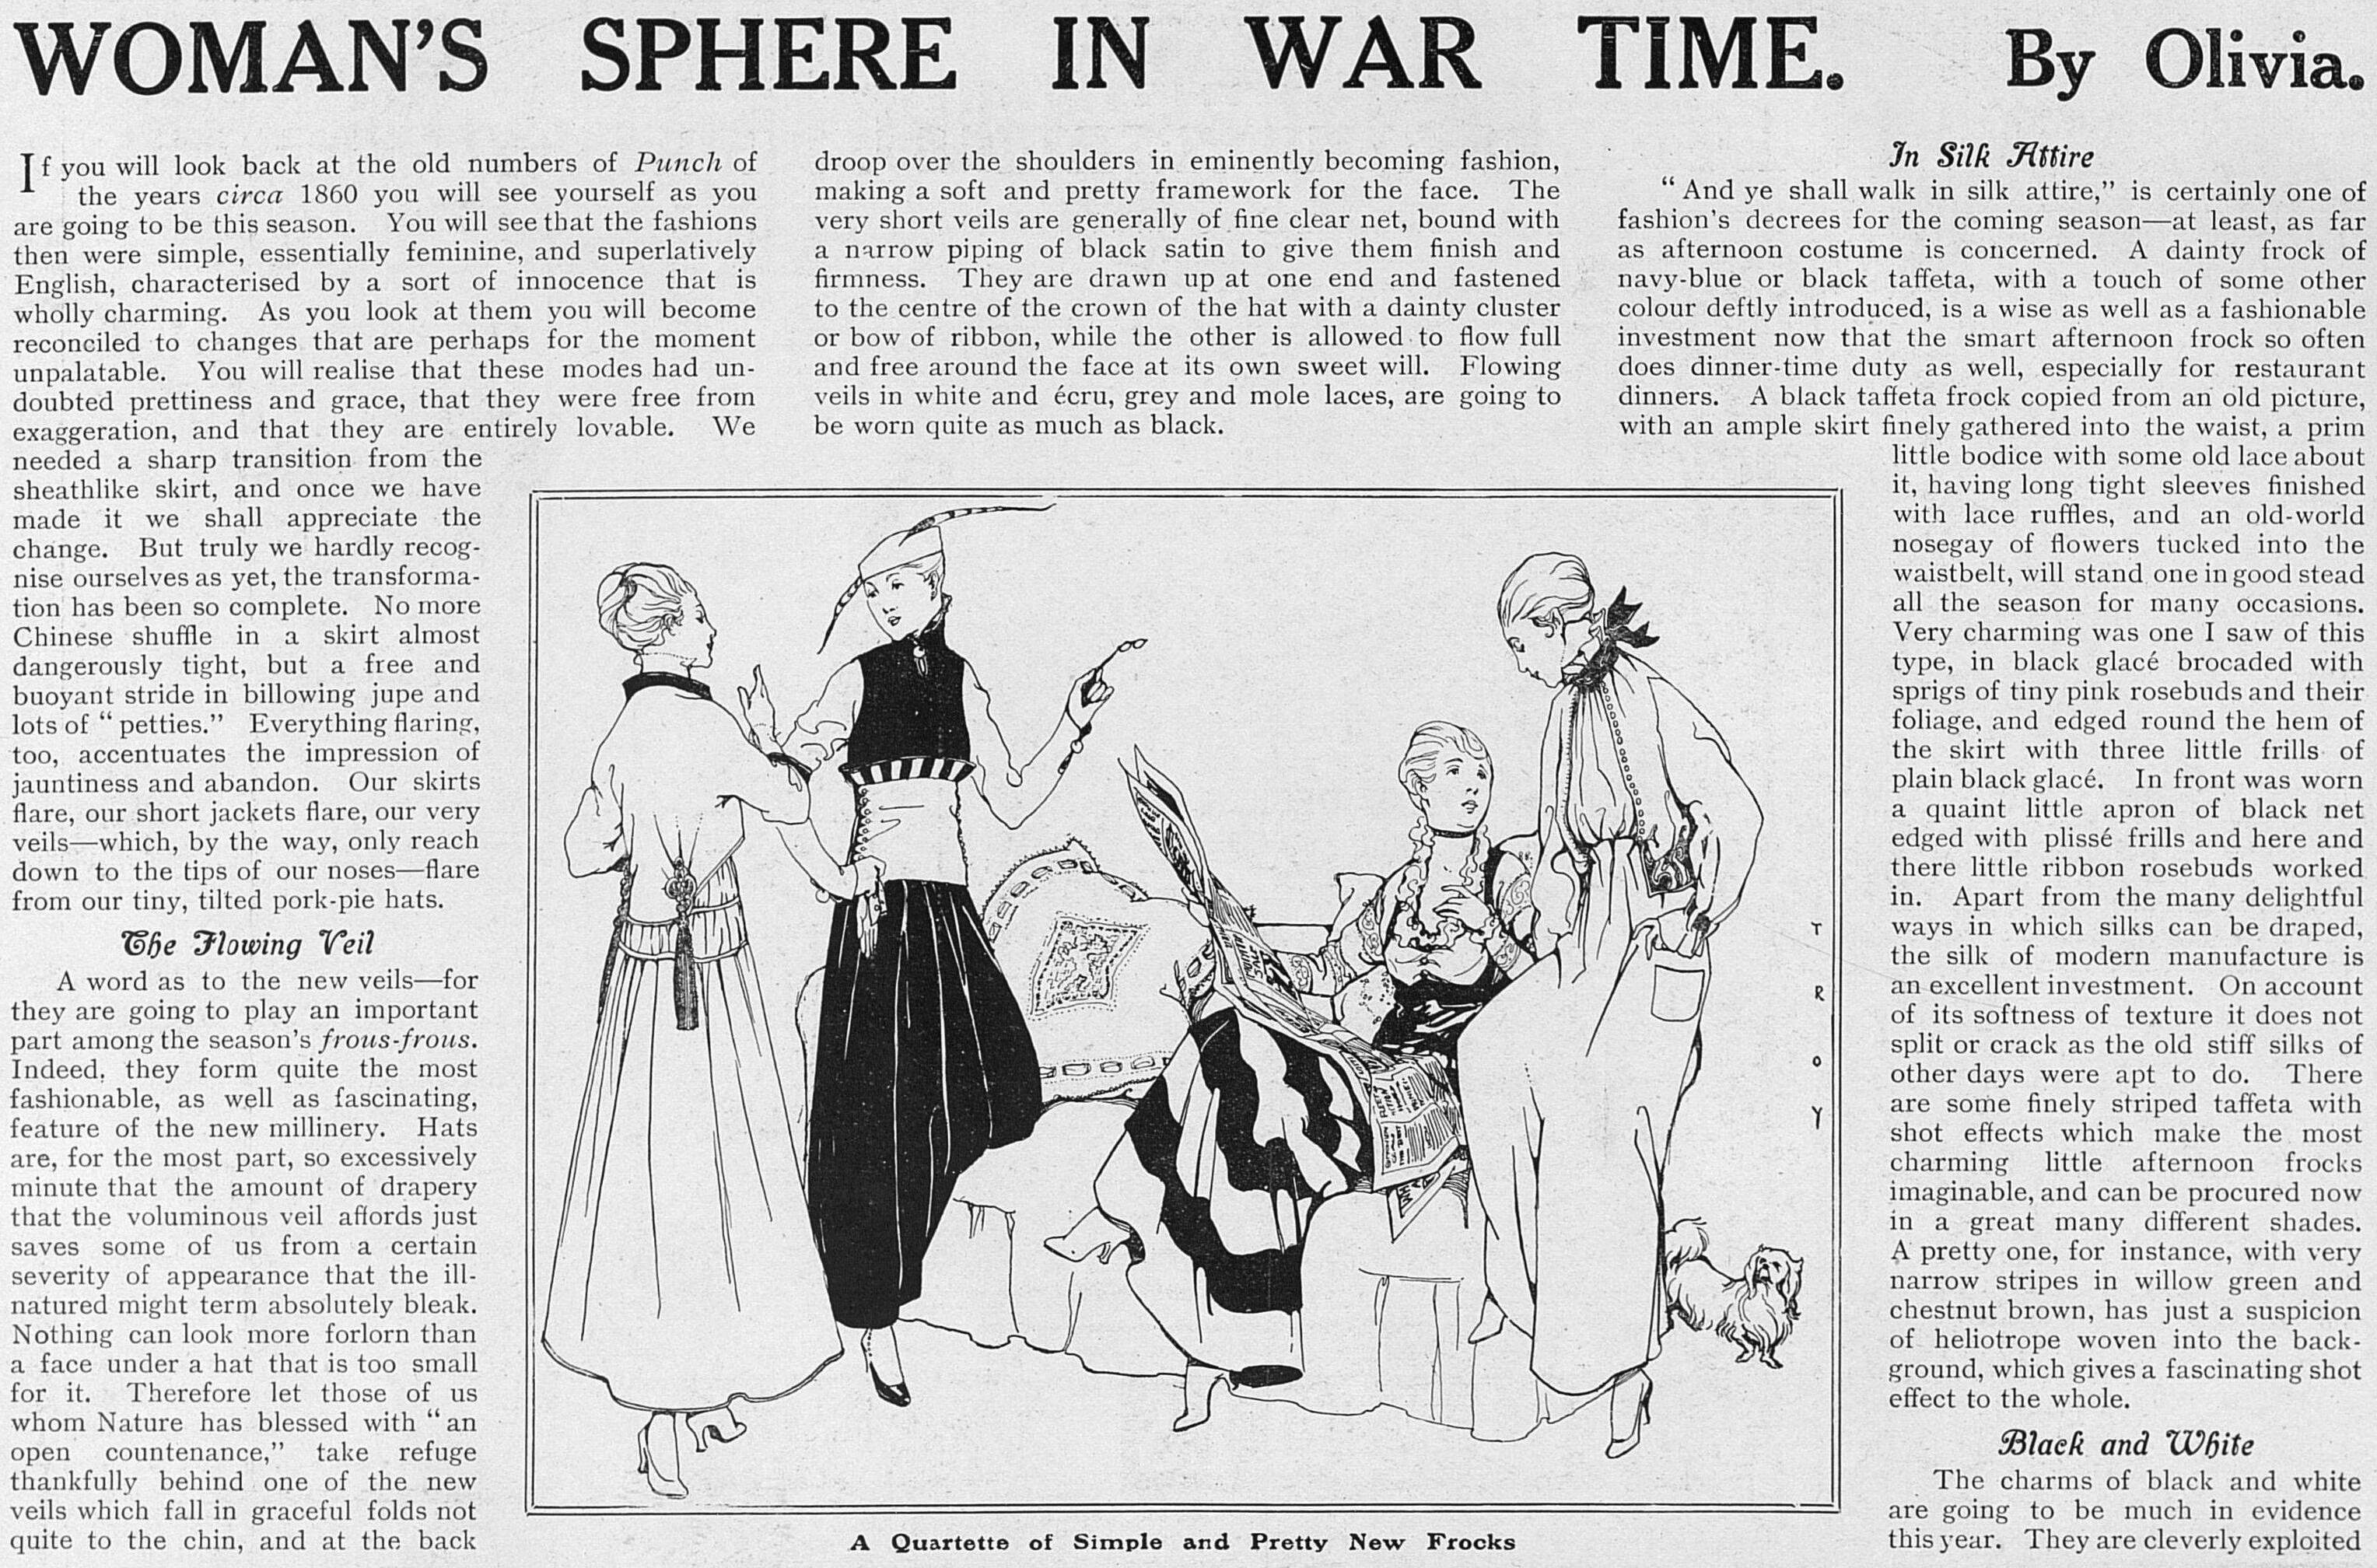 WomansSphereInWarTime_17Apr1915